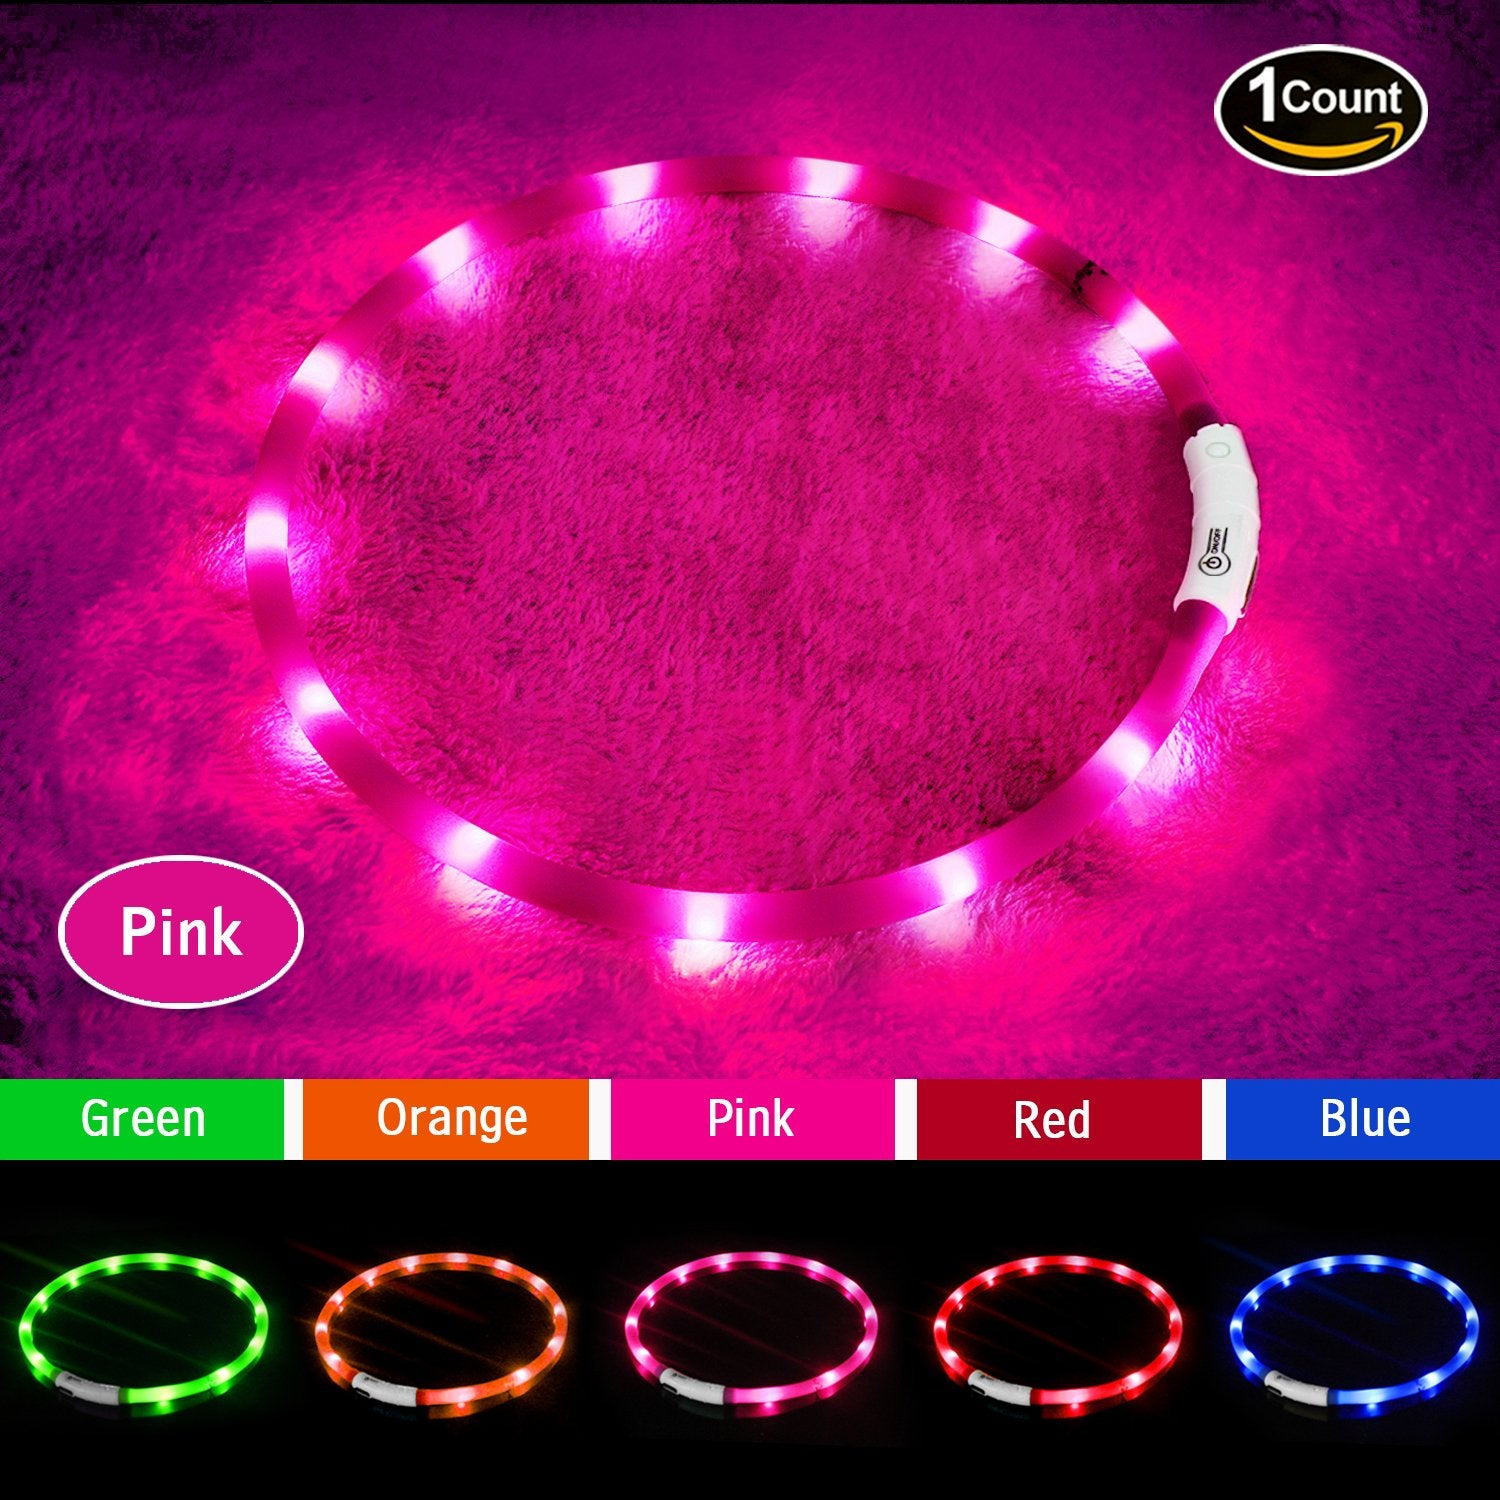 LED Dog Collar,USB Rechargeable Glowing Dog Collars, Light Up Collar Improved Pet Safety &Visibility at Night, 3 Flashing Modes,Water-Resistant Lighted Collar Fits For Small Medium Large Dogs